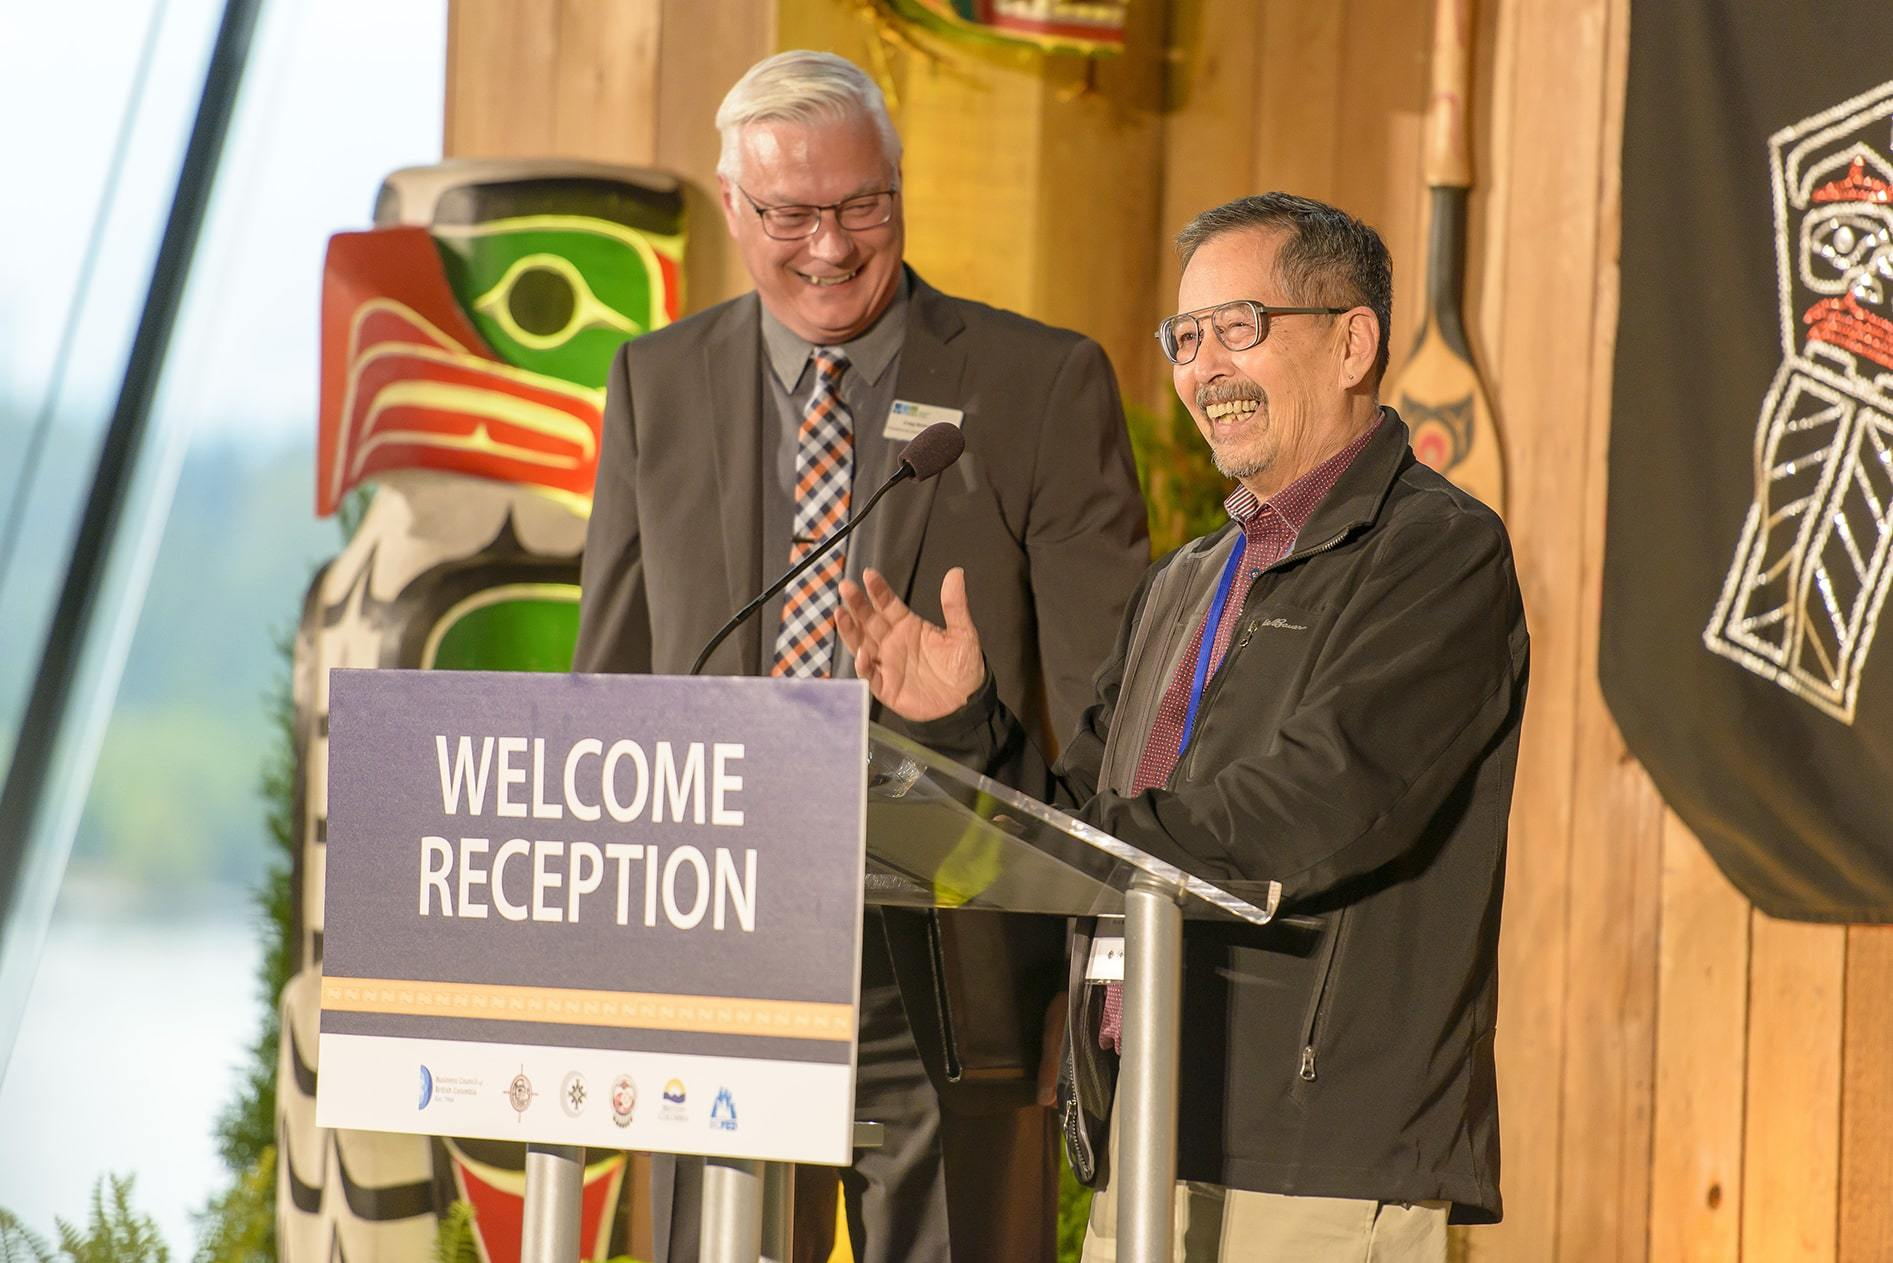 B.C. Cabinet and First Nations Leaders' Gathering Welcome Reception 2017